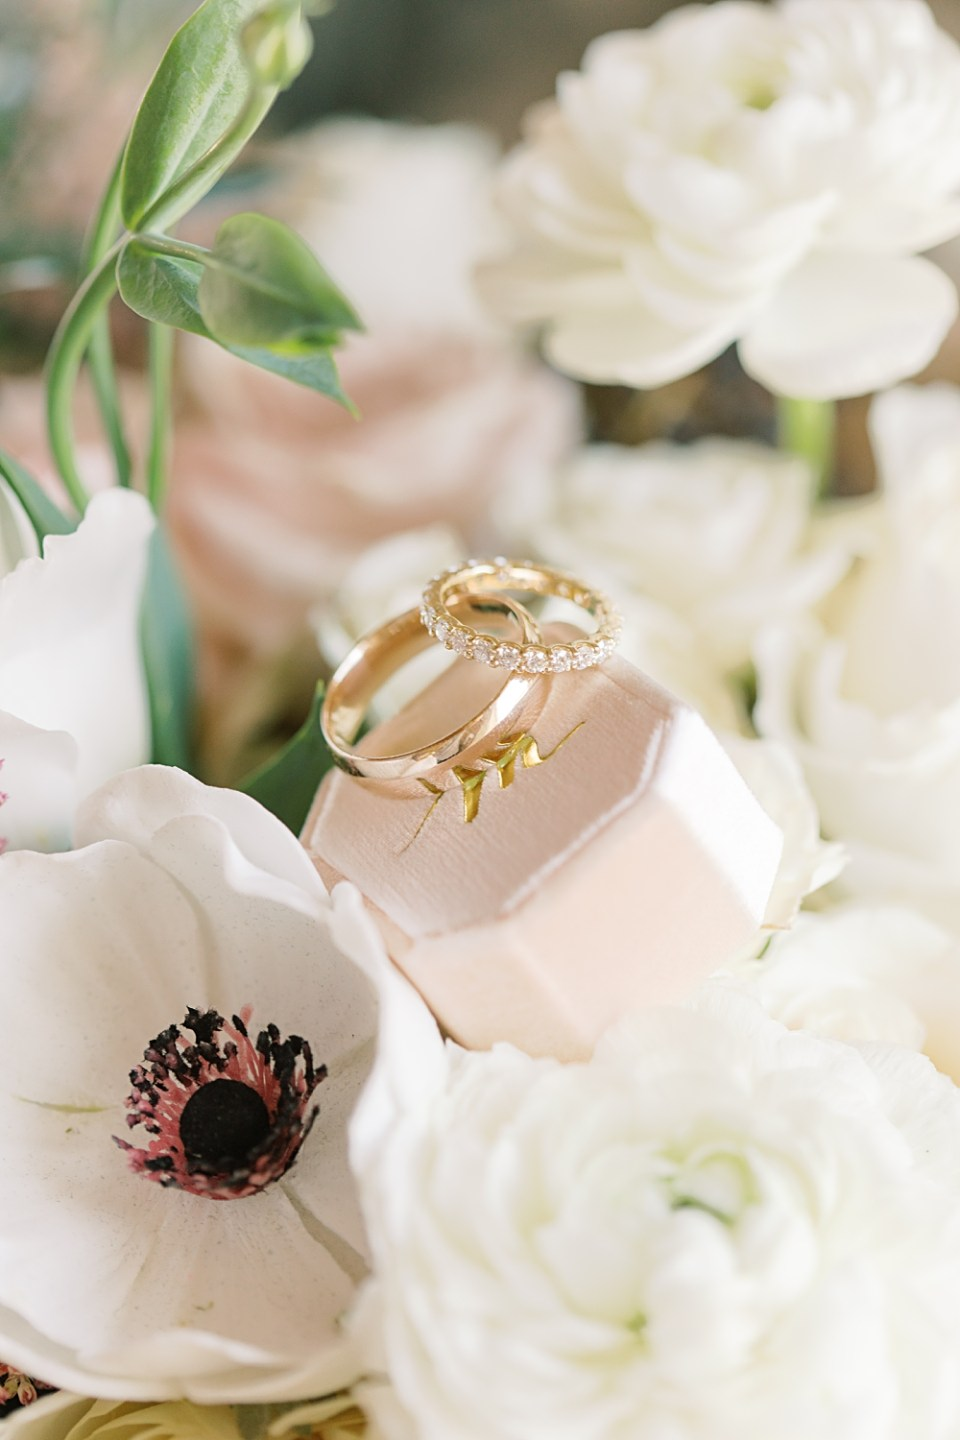 gold wedding bands | bear brook valley wedding photographer | sarah canning photography